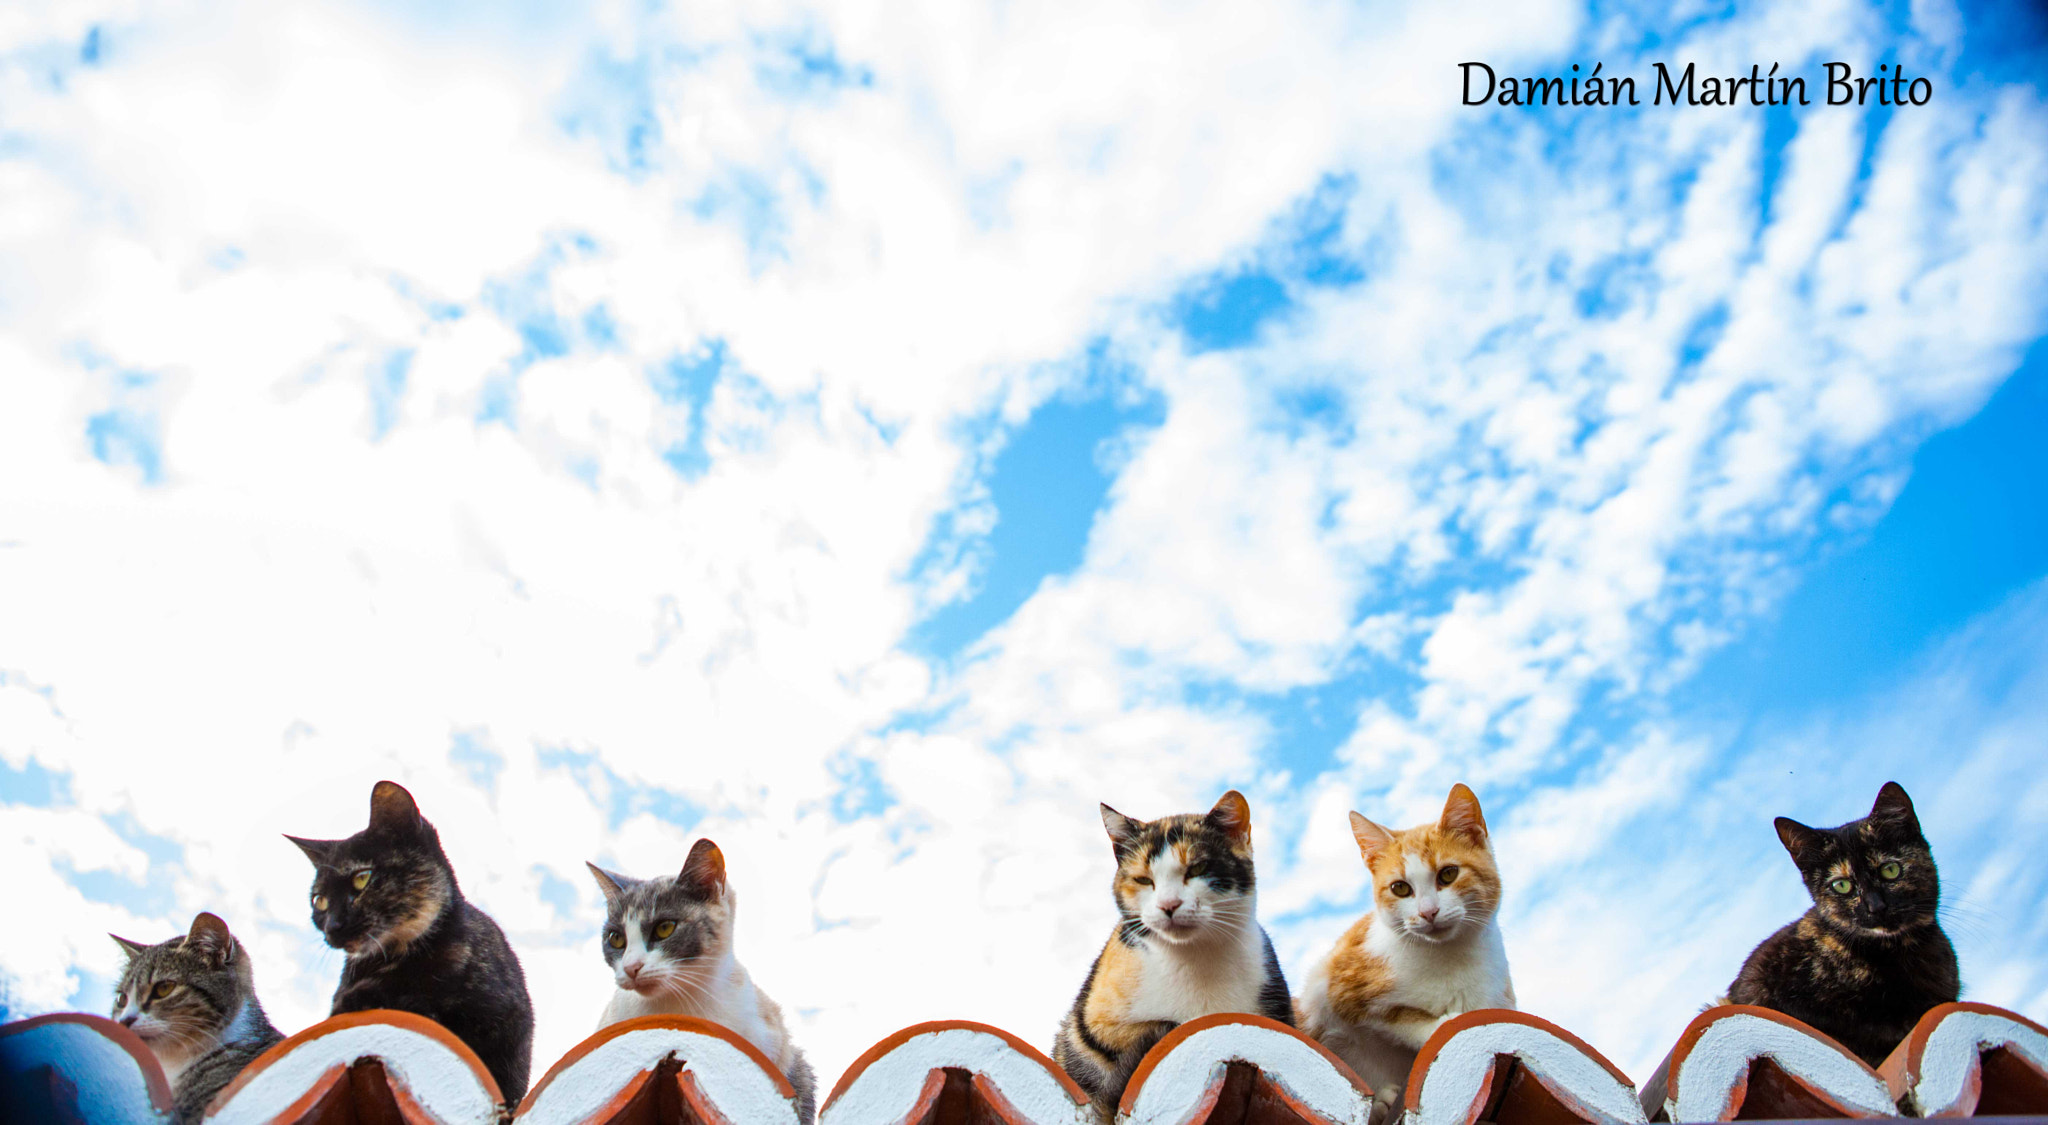 Photograph Gatos núbicos by Damian Martin Brito on 500px